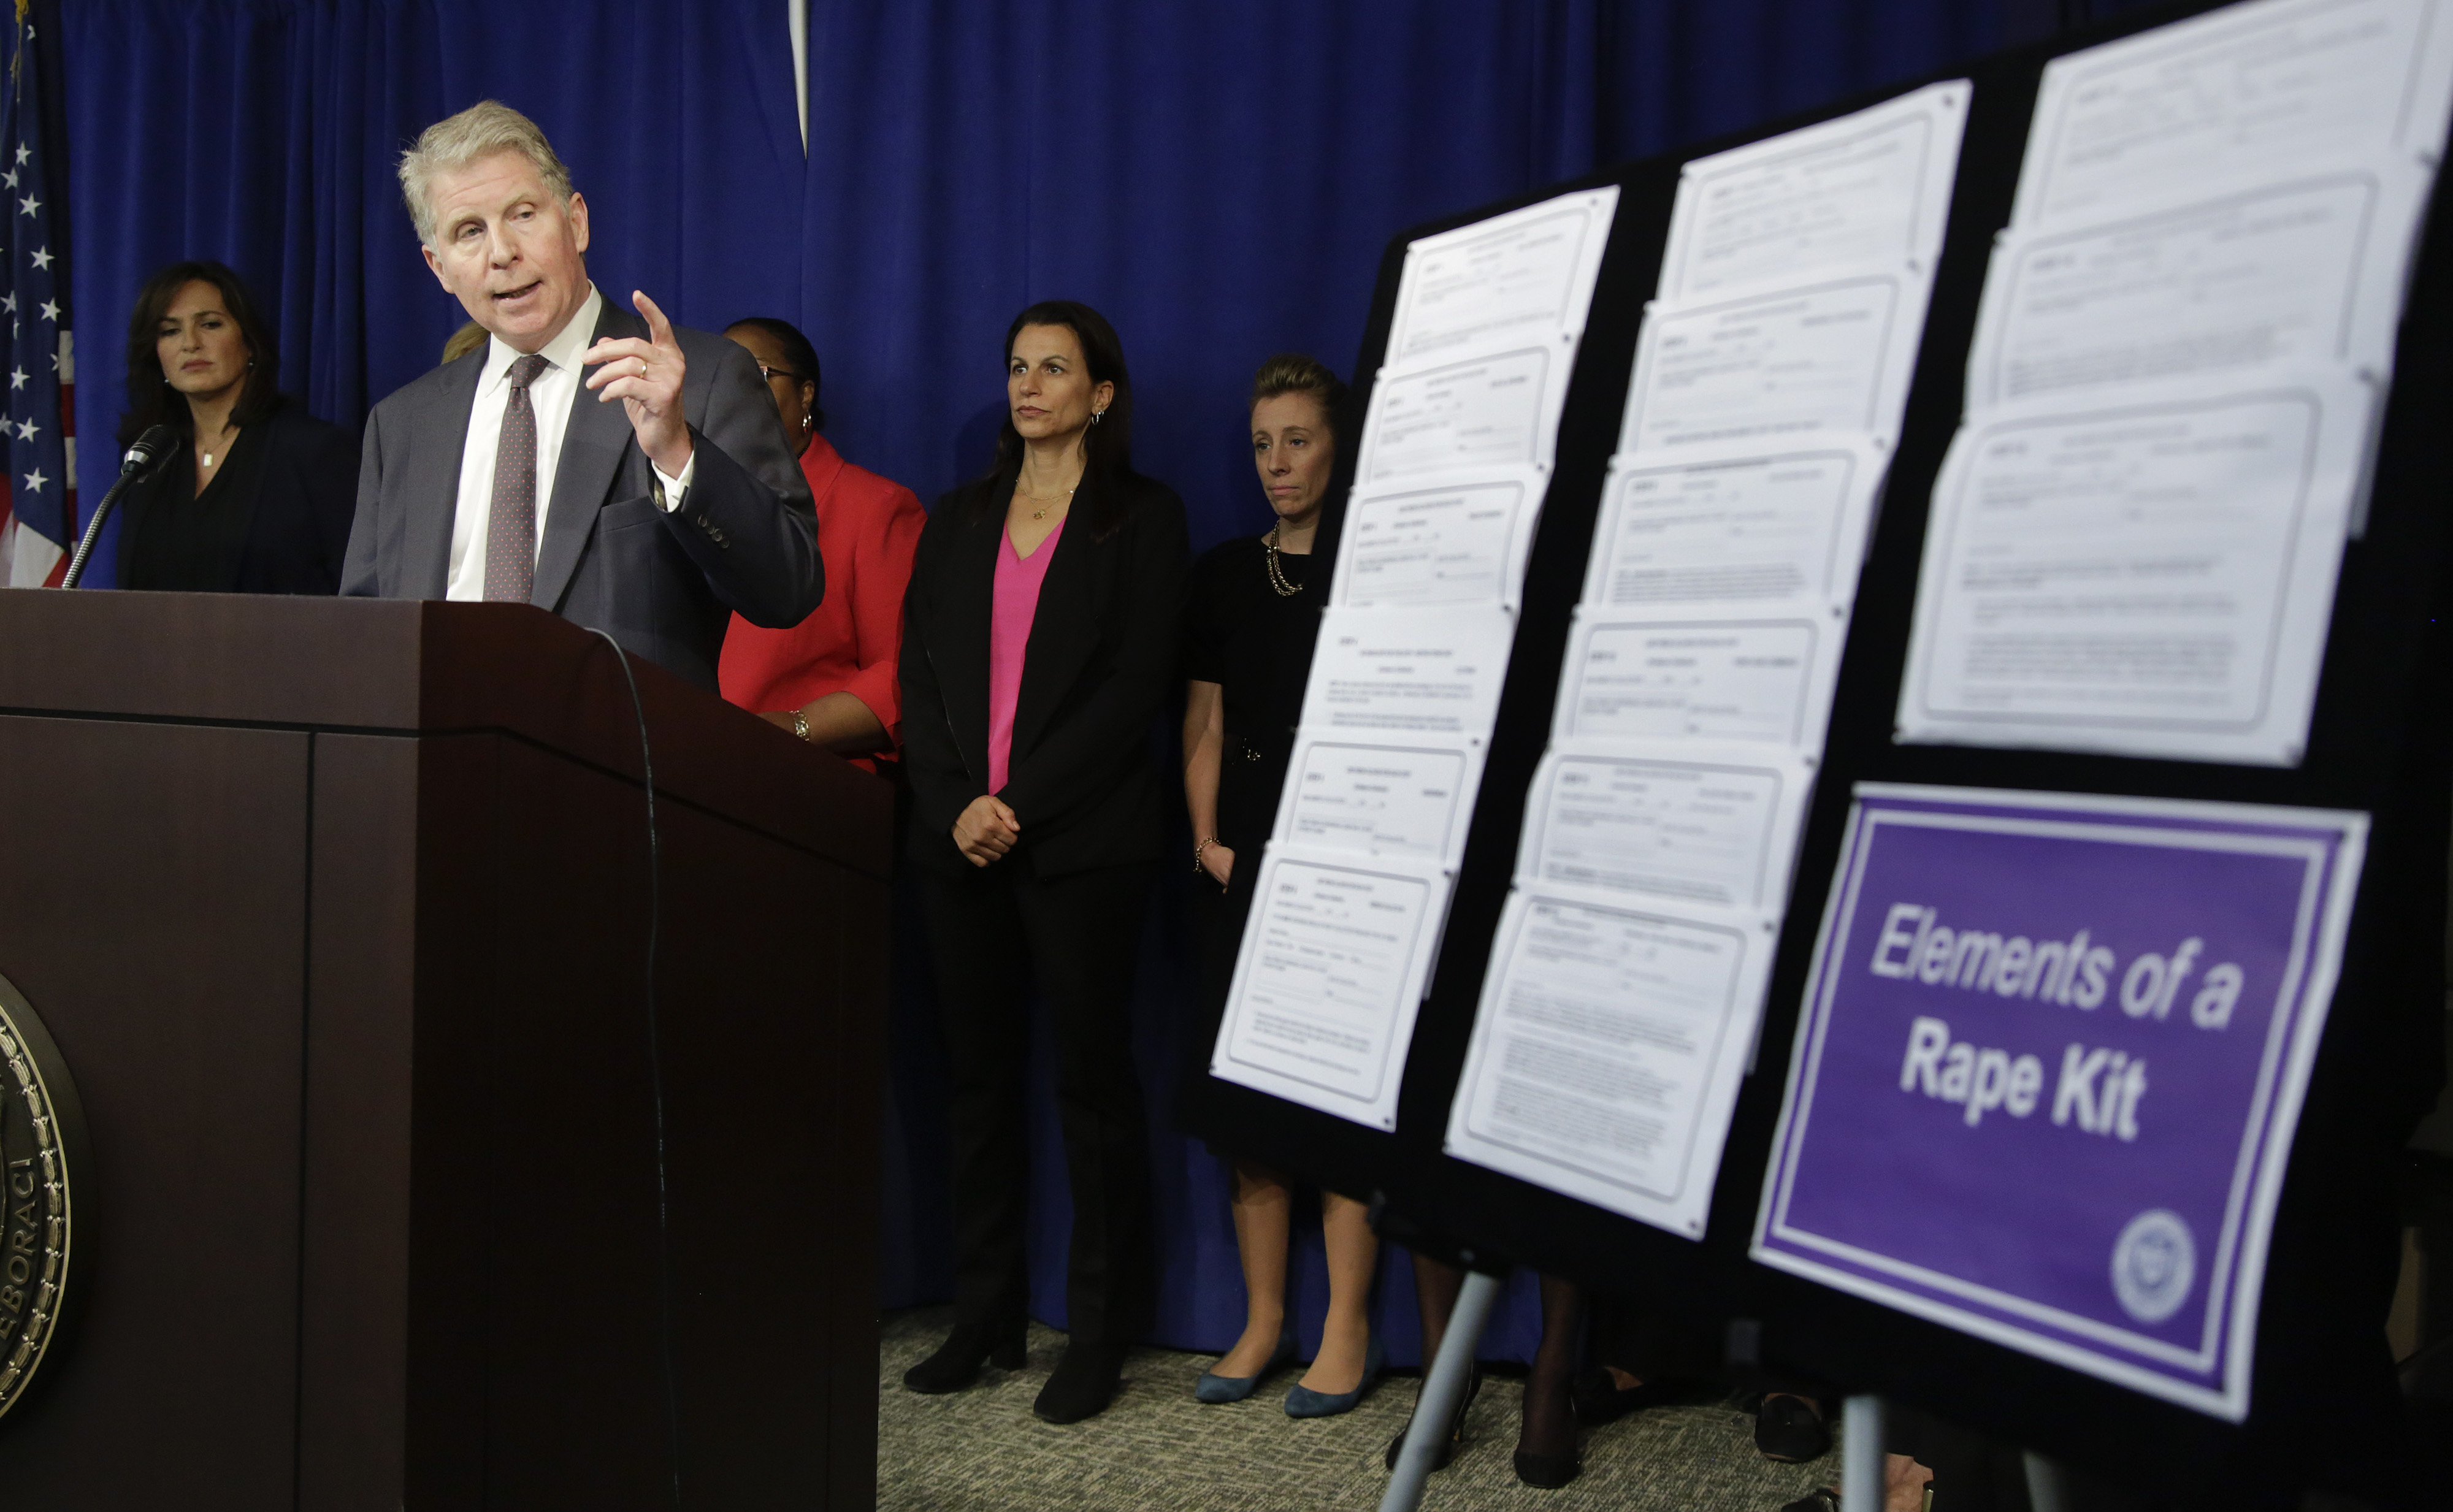 Manhattan district attorney Cyrus Vance Jr. talks about the $35 million he is pledging in funding to eliminate the backlog of untested rape kits in New York City, the state and across the country during a news conference,Nov. 12, 2014, in New York.